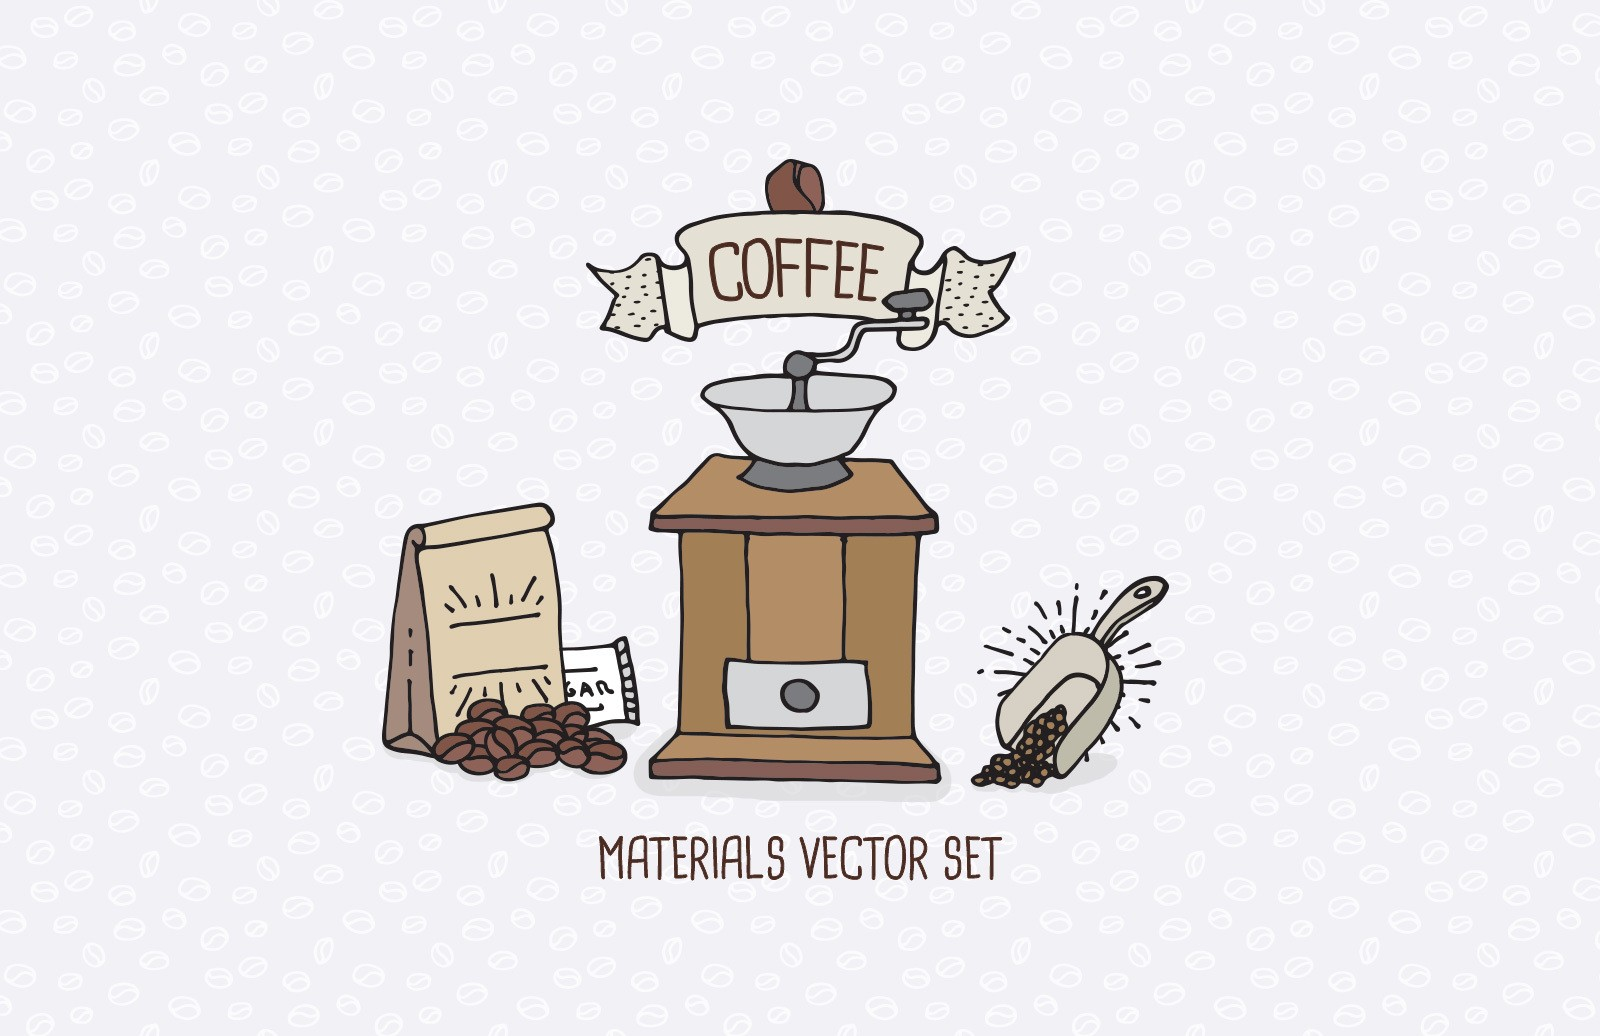 Coffee Shop Materials Vector Set